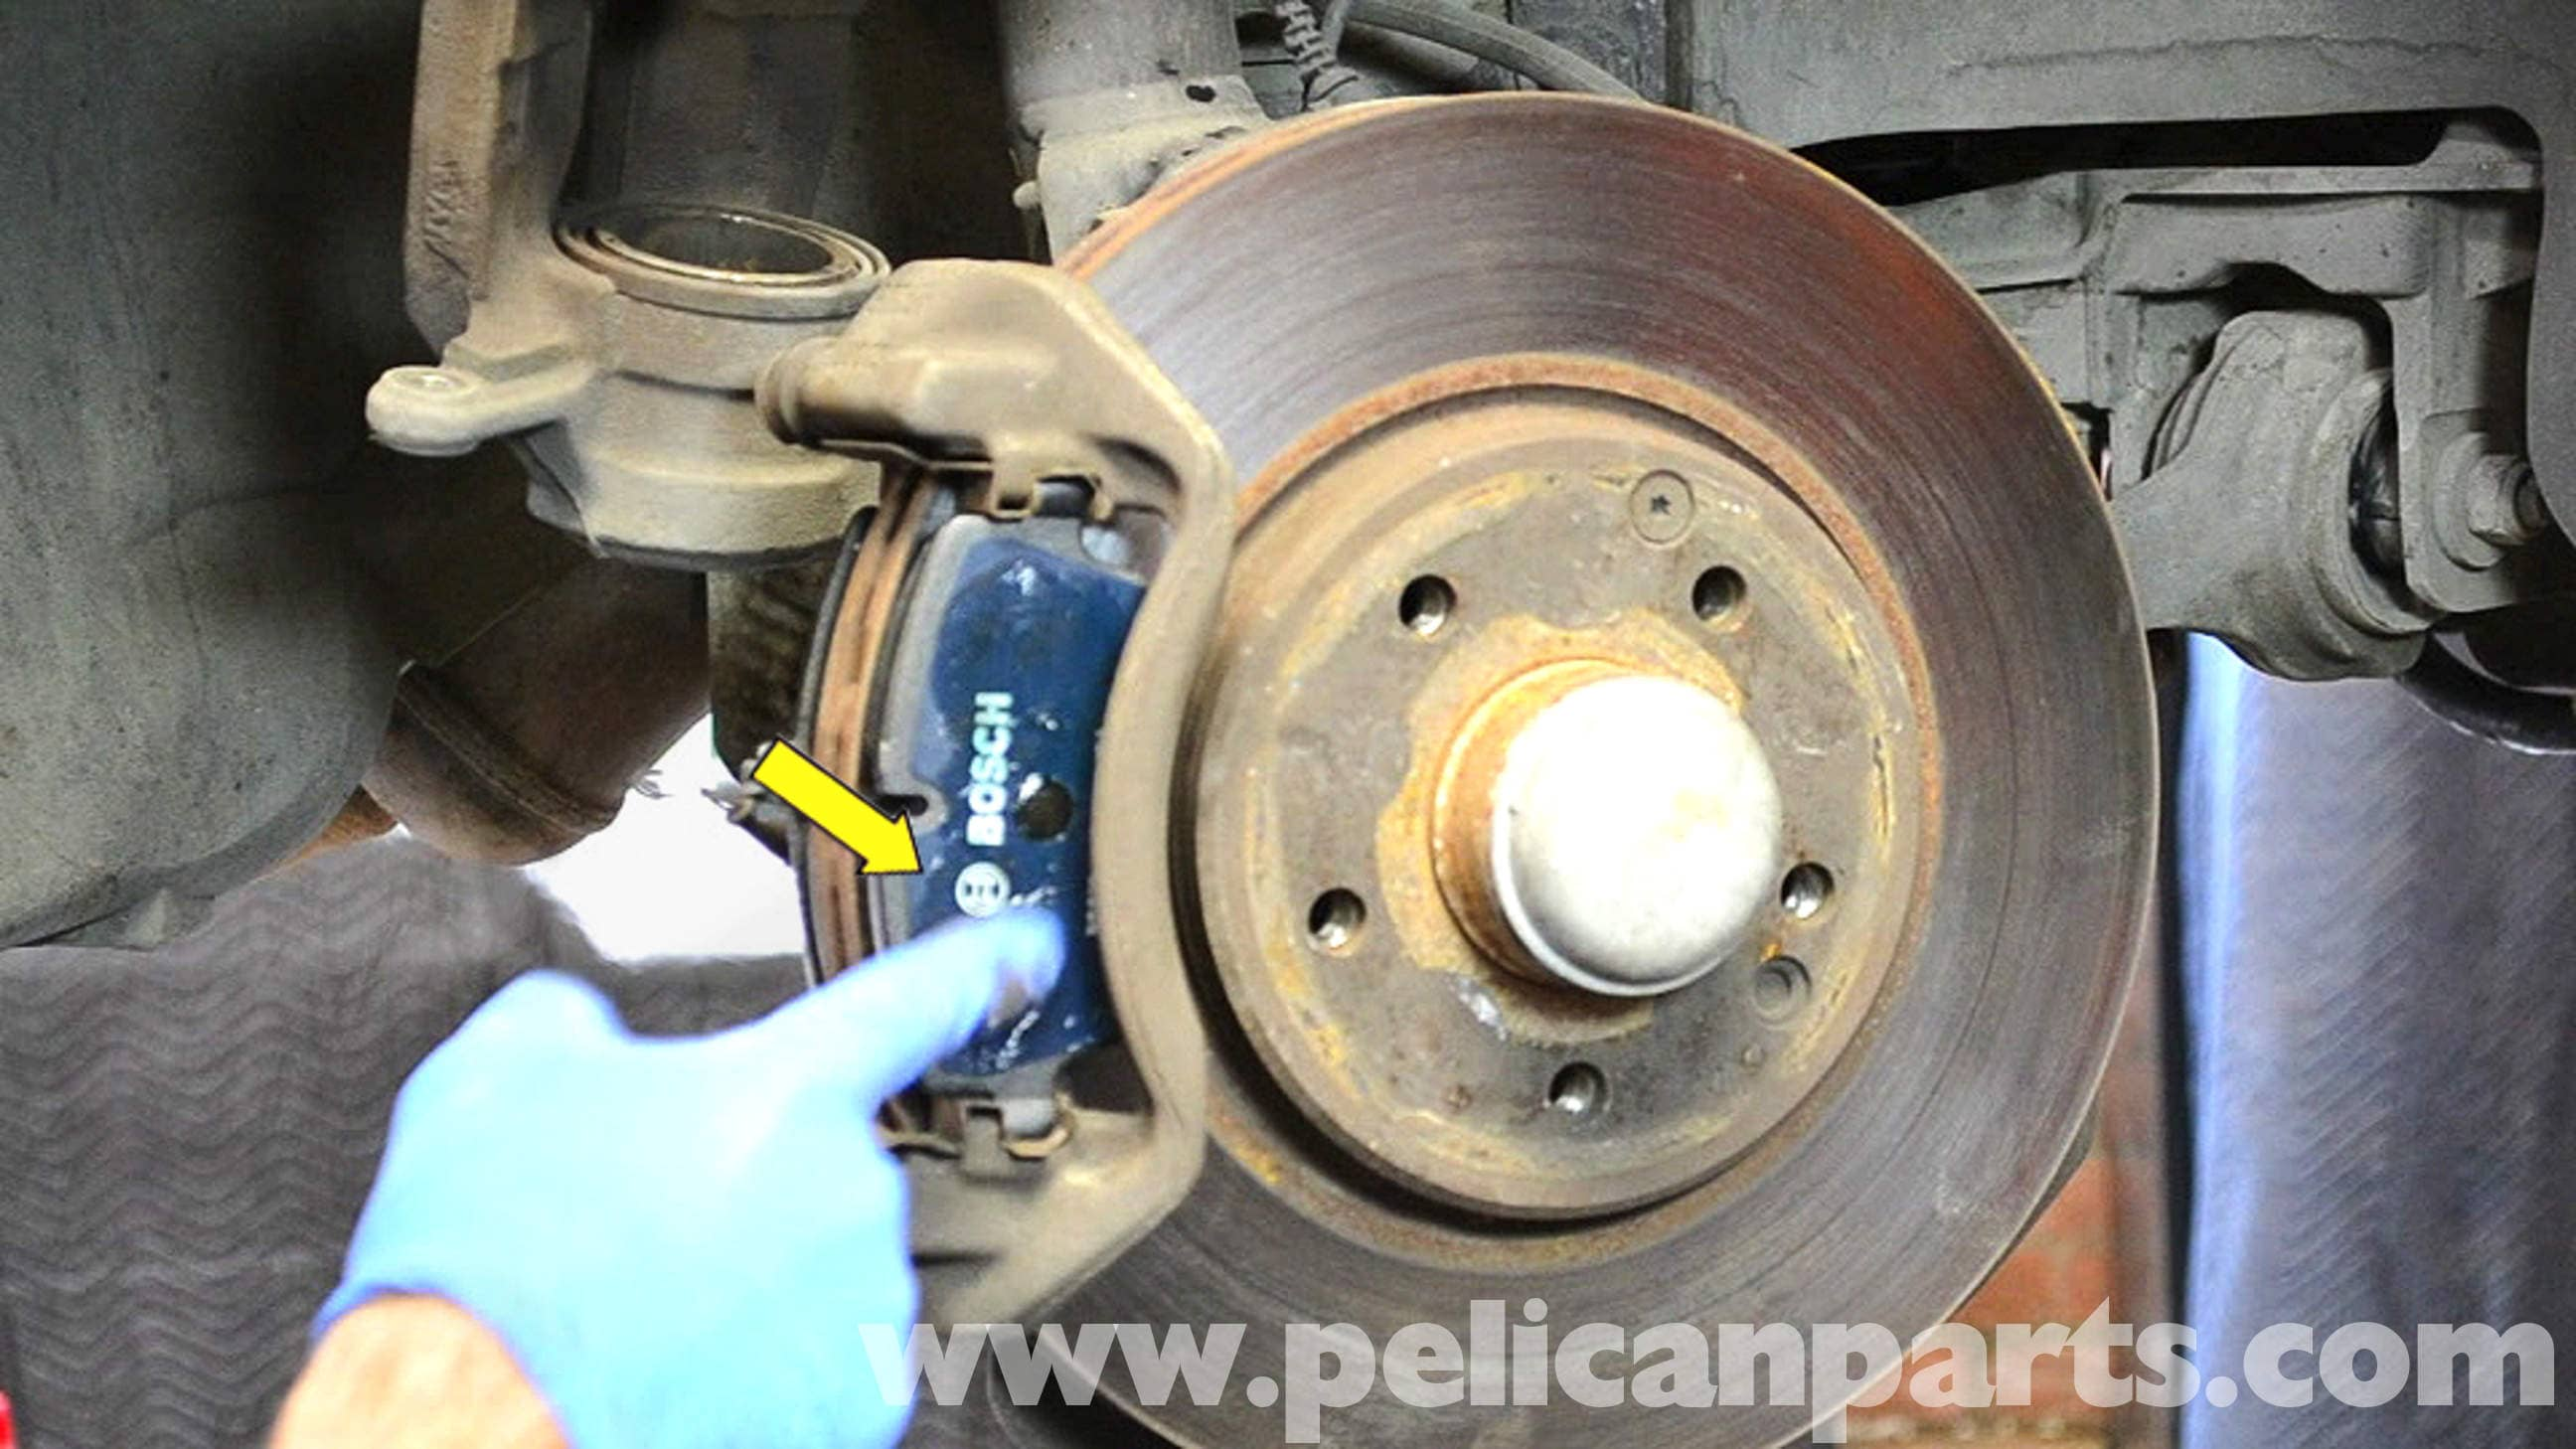 Mercedes Benz W203 Front Brake Pad Replacement 2001